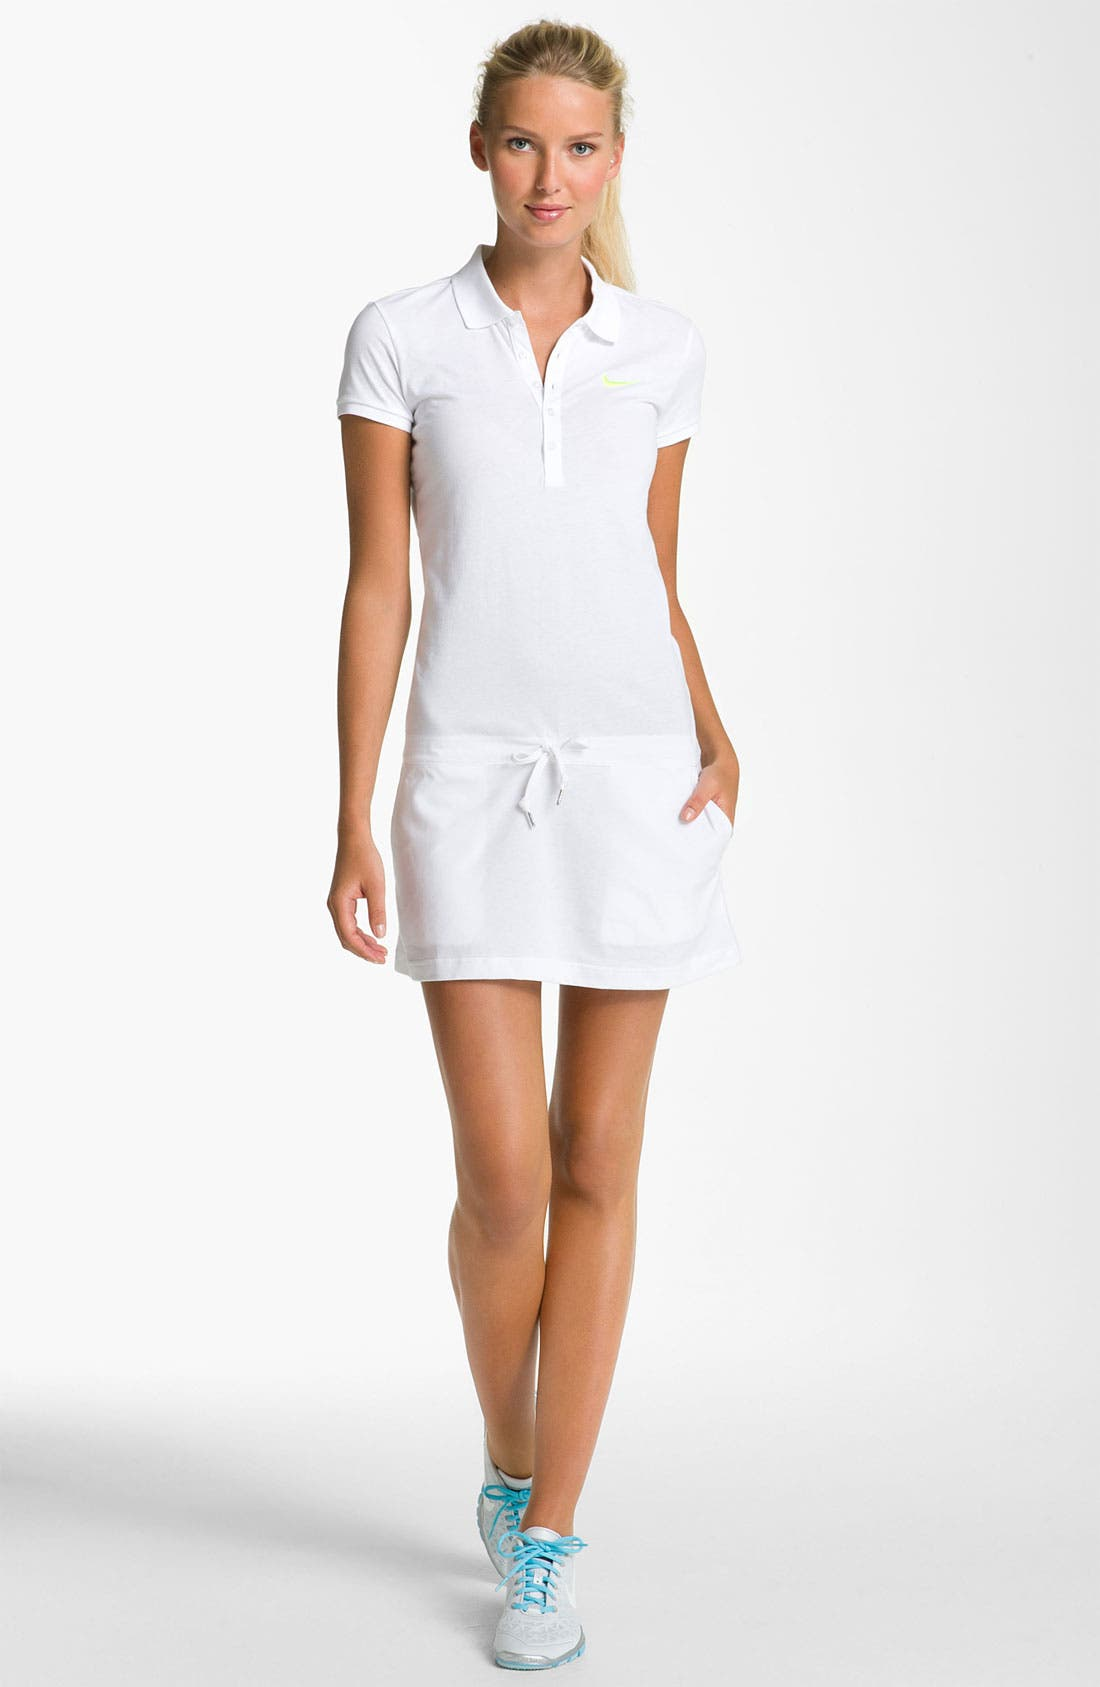 Alternate Image 1 Selected - Nike 'AD' Polo Dress